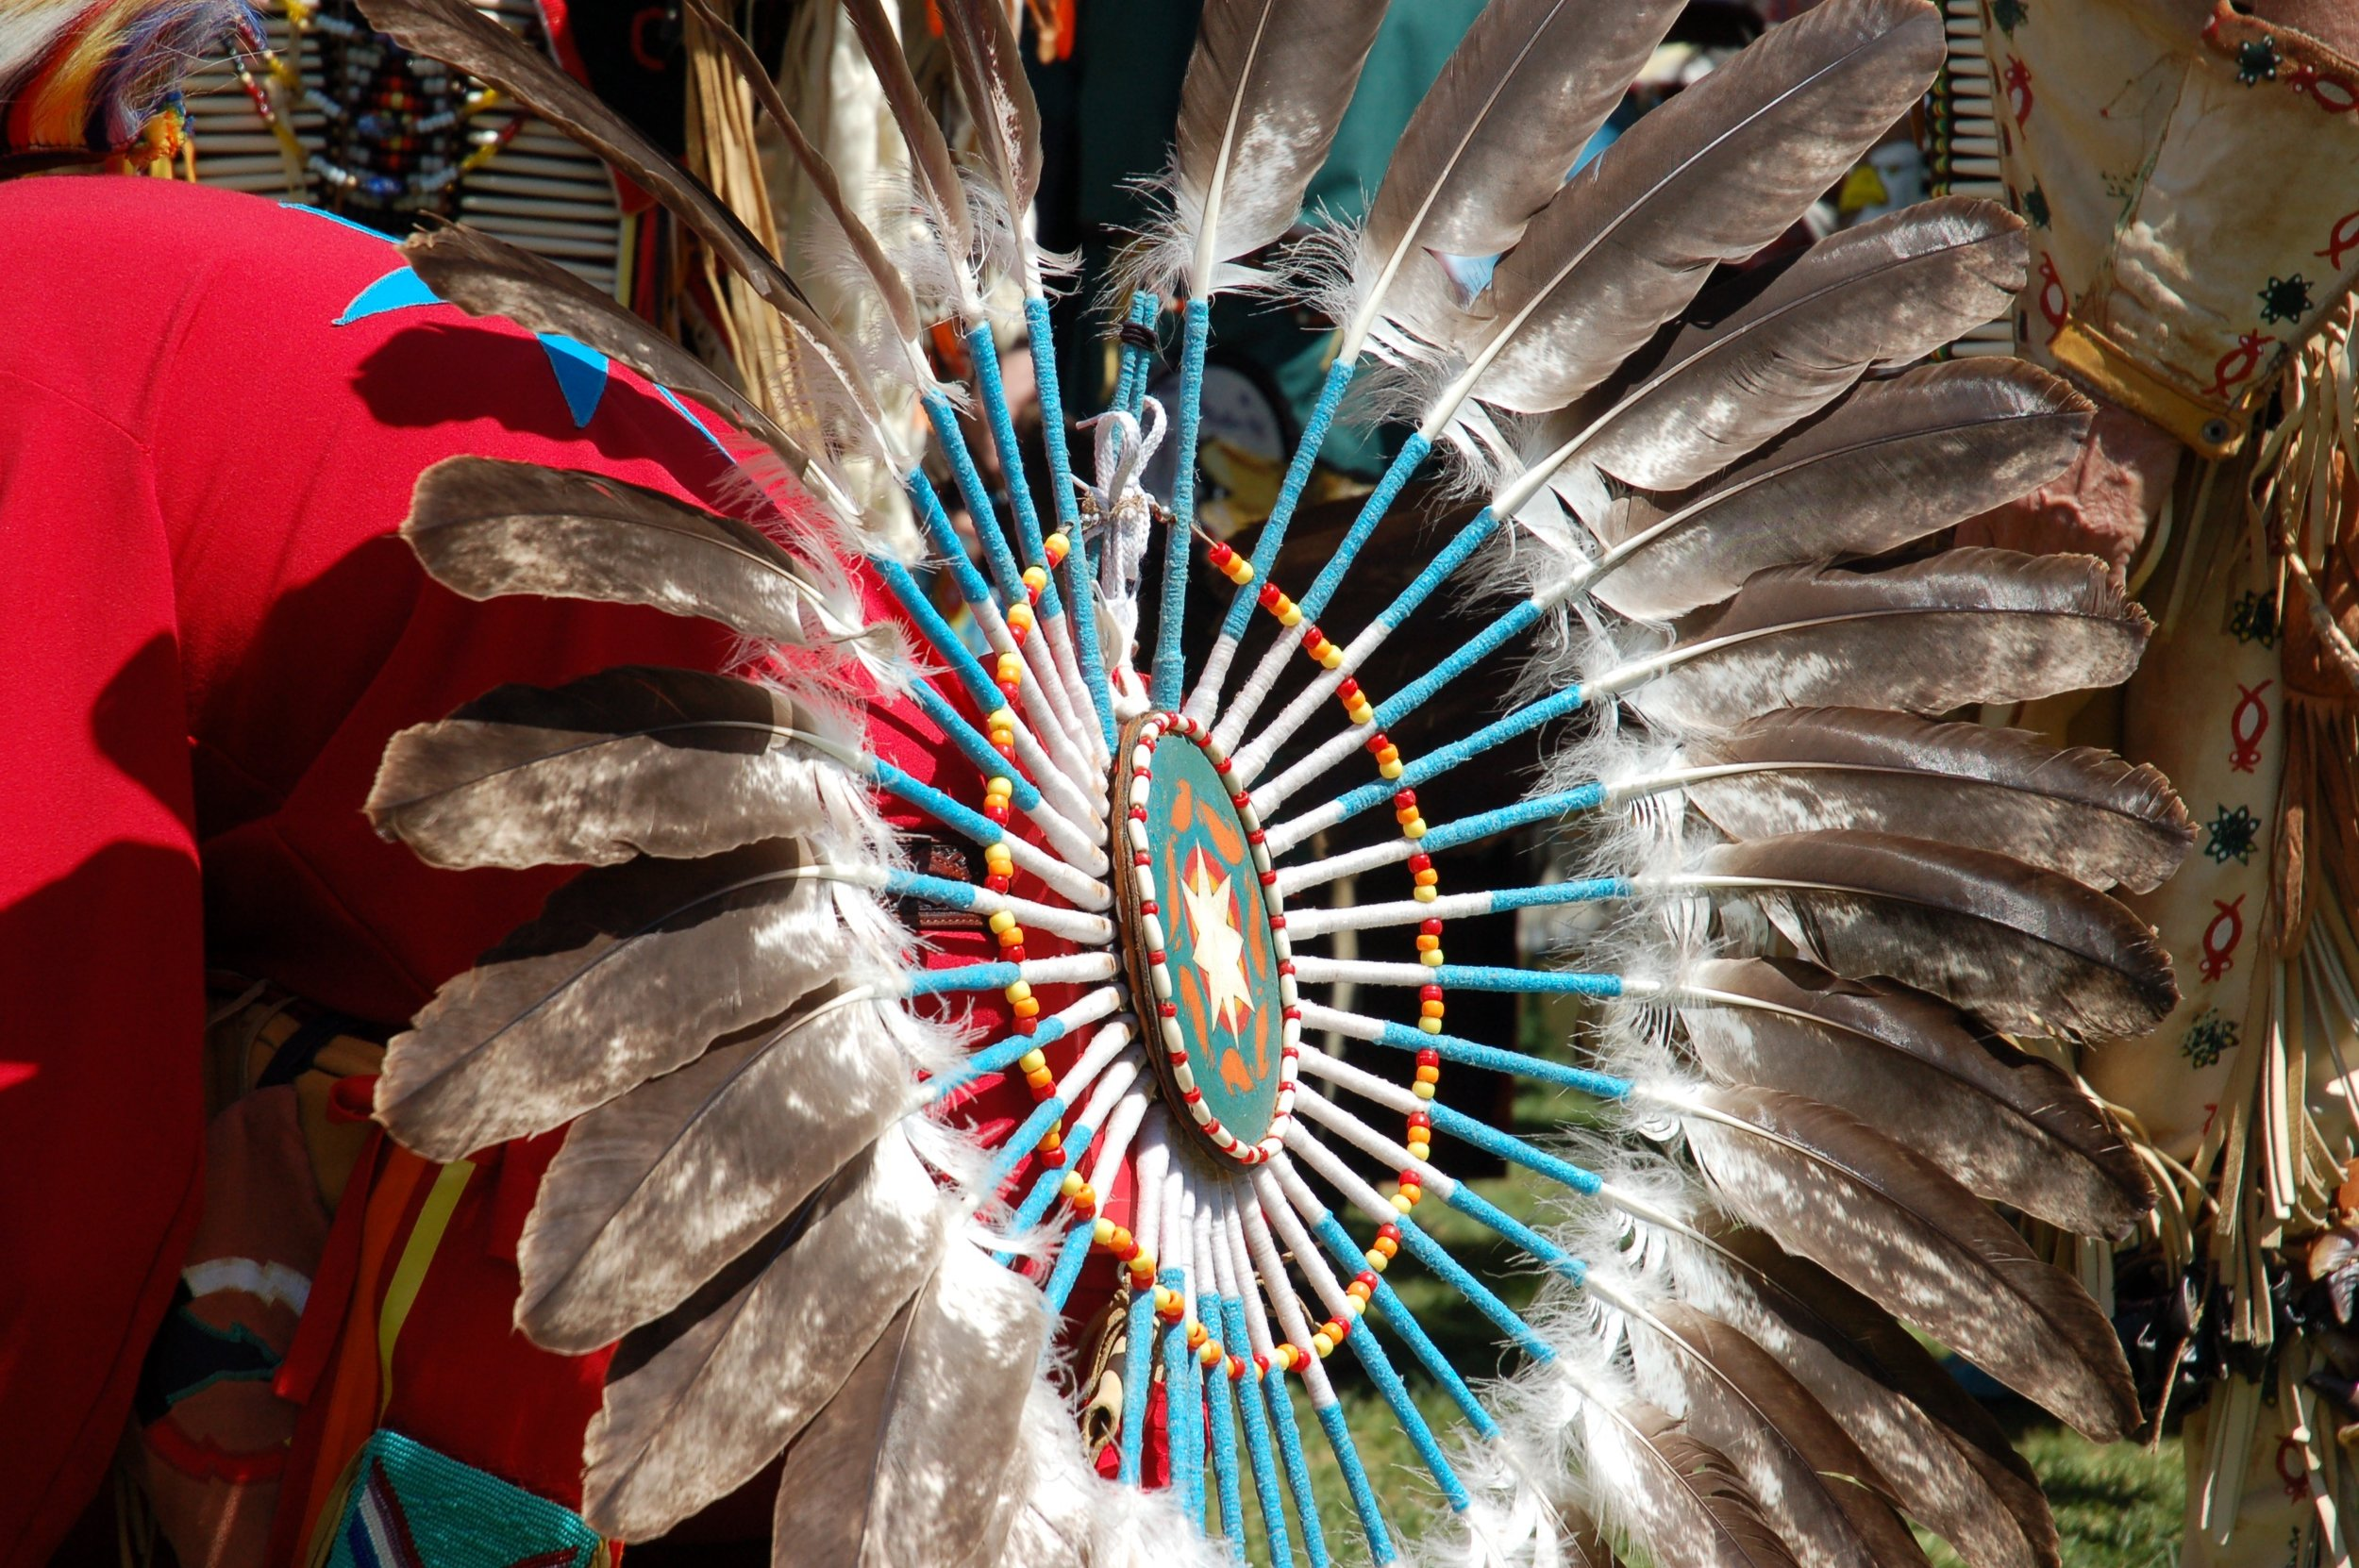 A dancer's regalia at Red Urban Project's third annual Montreal powwow, Vanier College campus, May 7-8 2016.